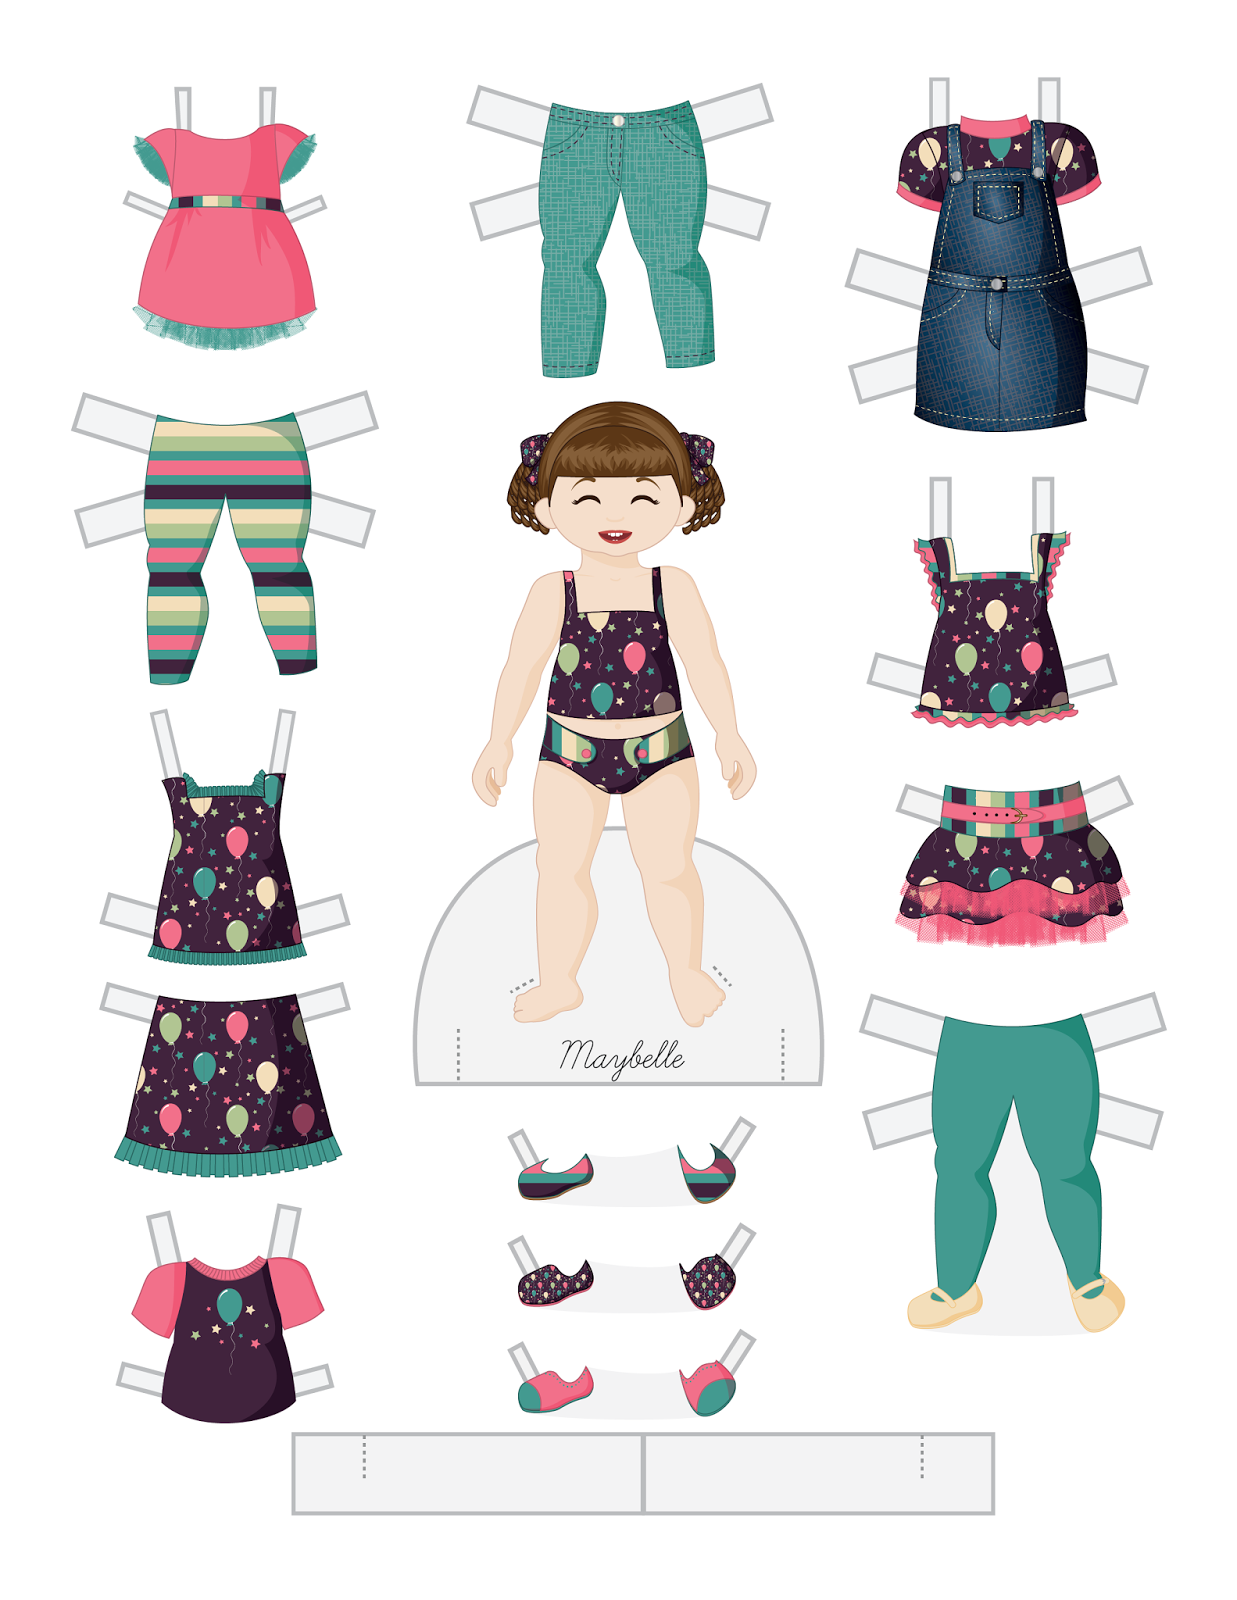 Paper dolls by Julie Allen Matthews. A birthday themed toddler paper doll to print & cut out!